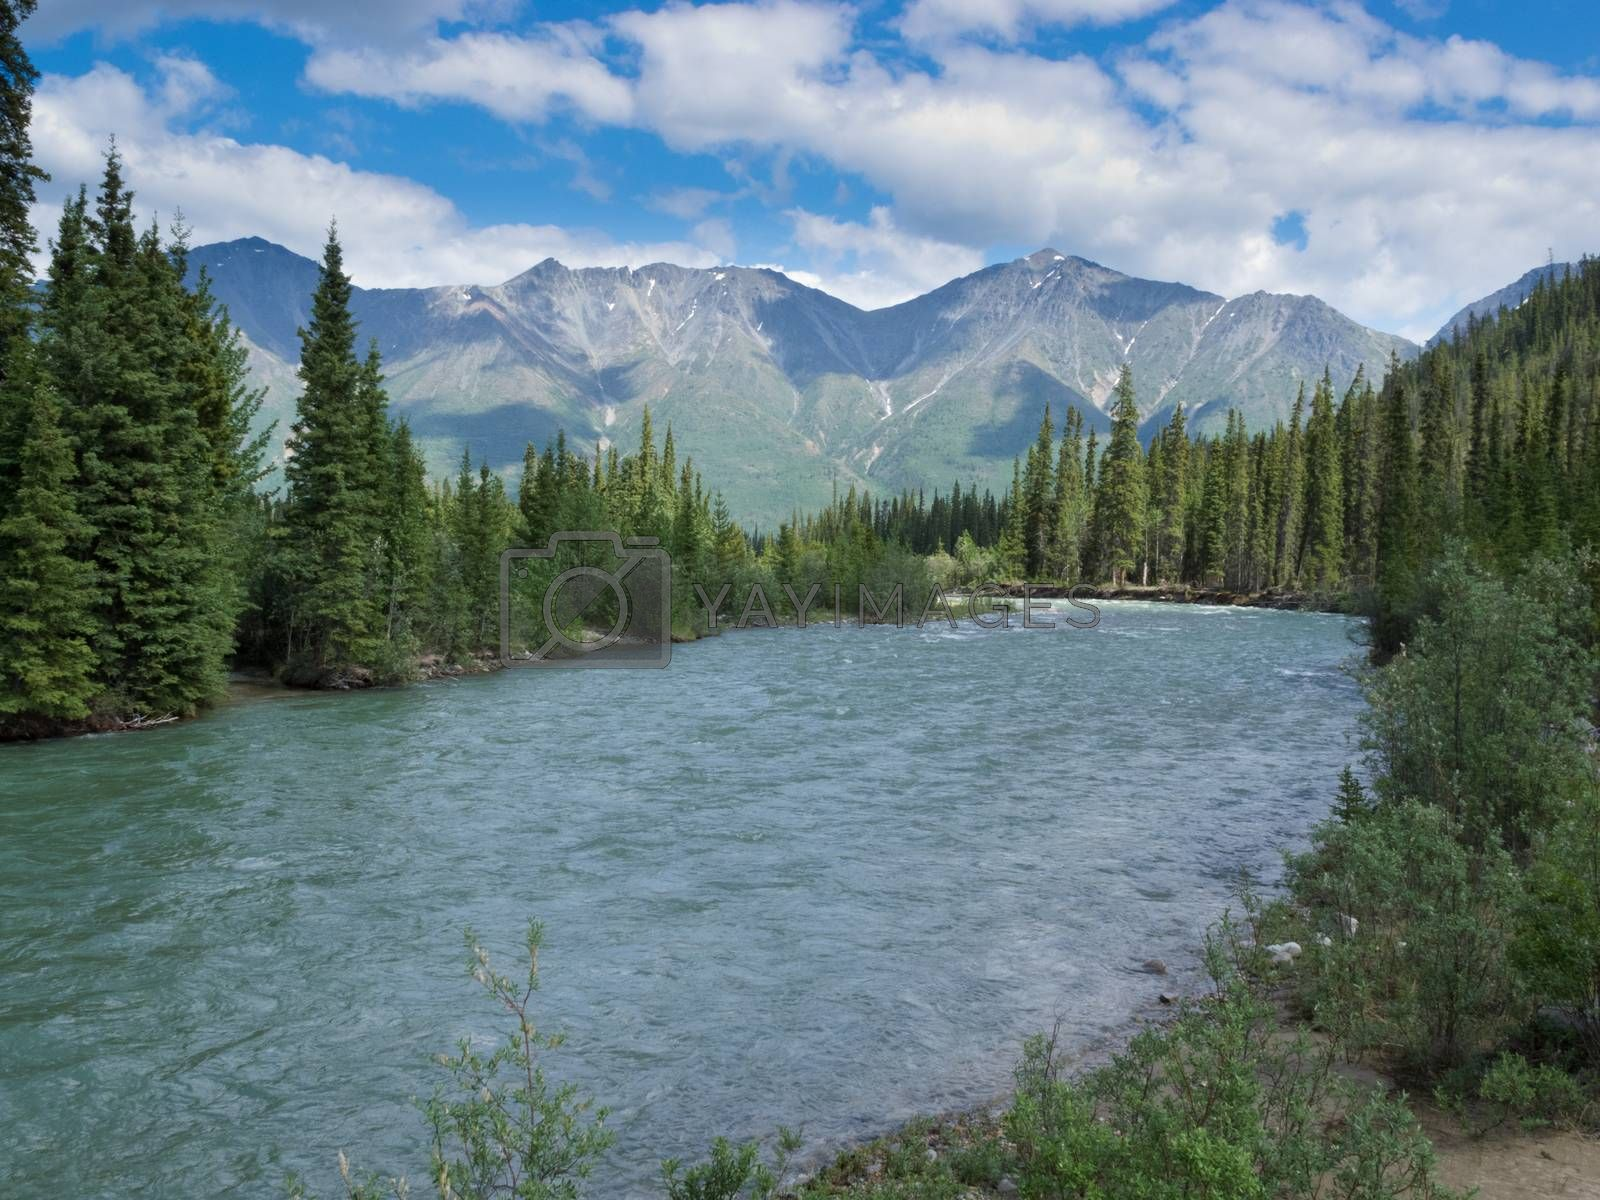 Wheaton River alpine valley Yukon Territory Canada by PiLens